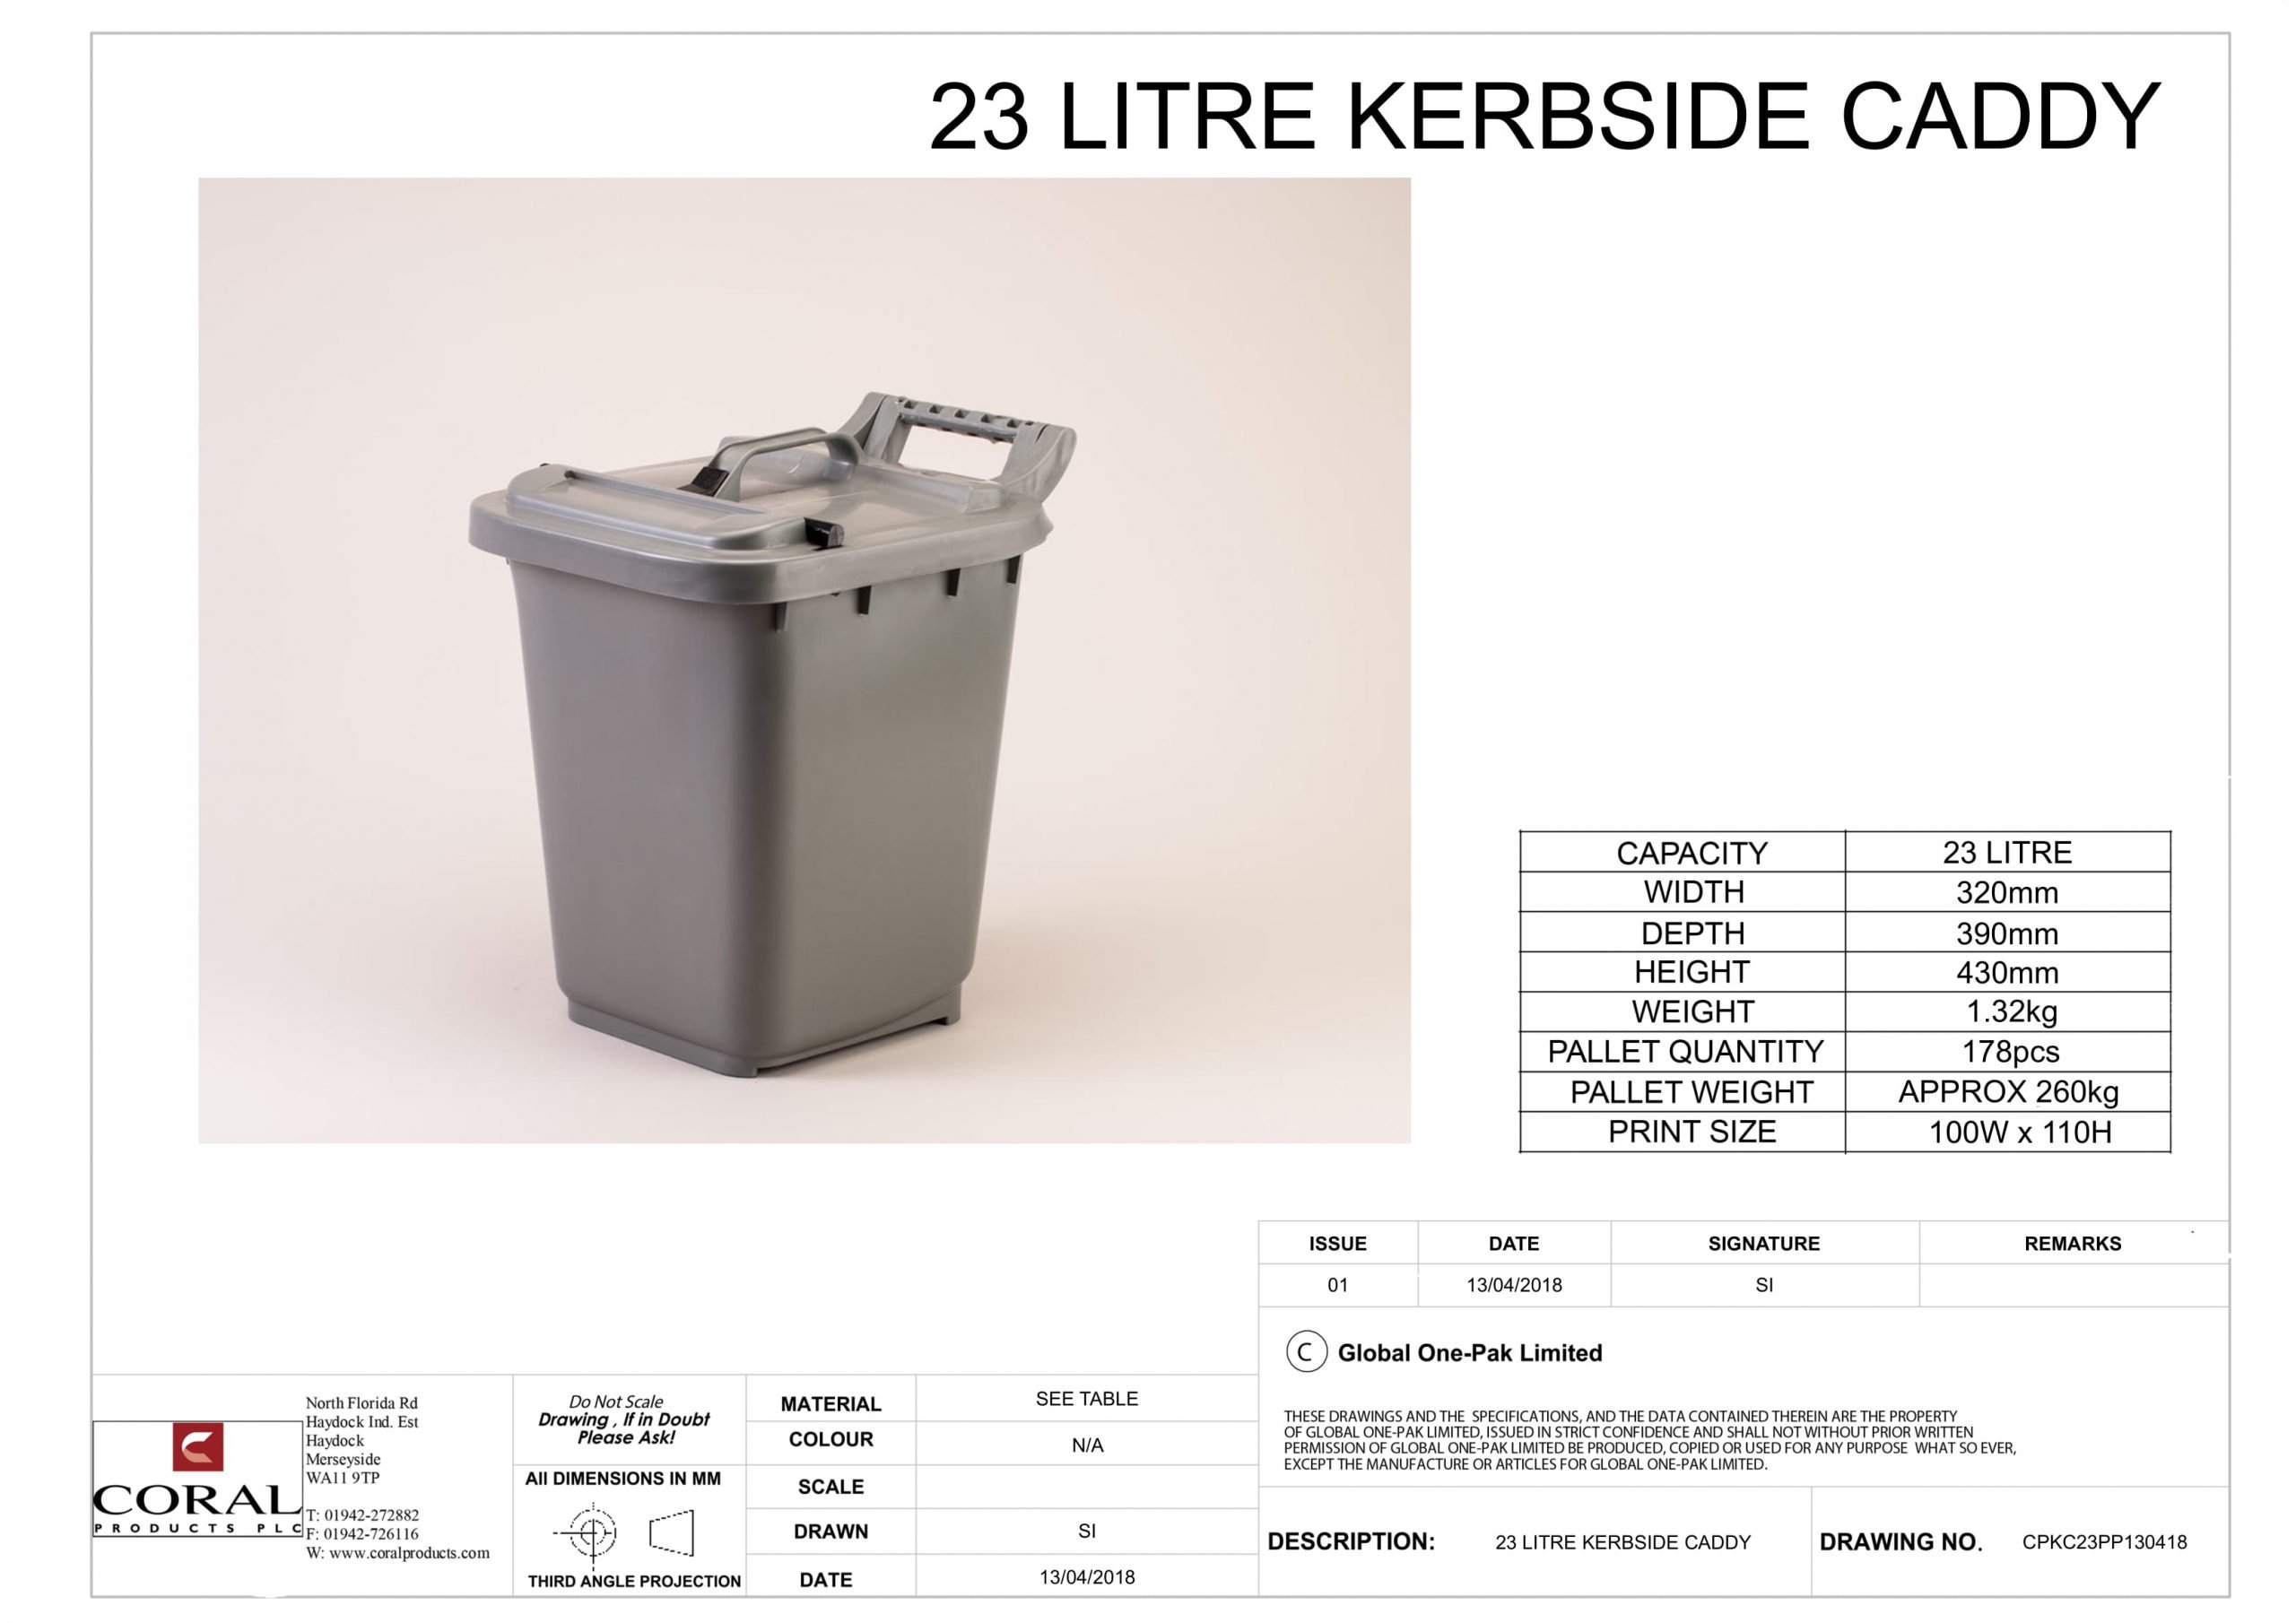 23 Litre Kerbside Caddy Data Sheet 1 scaled